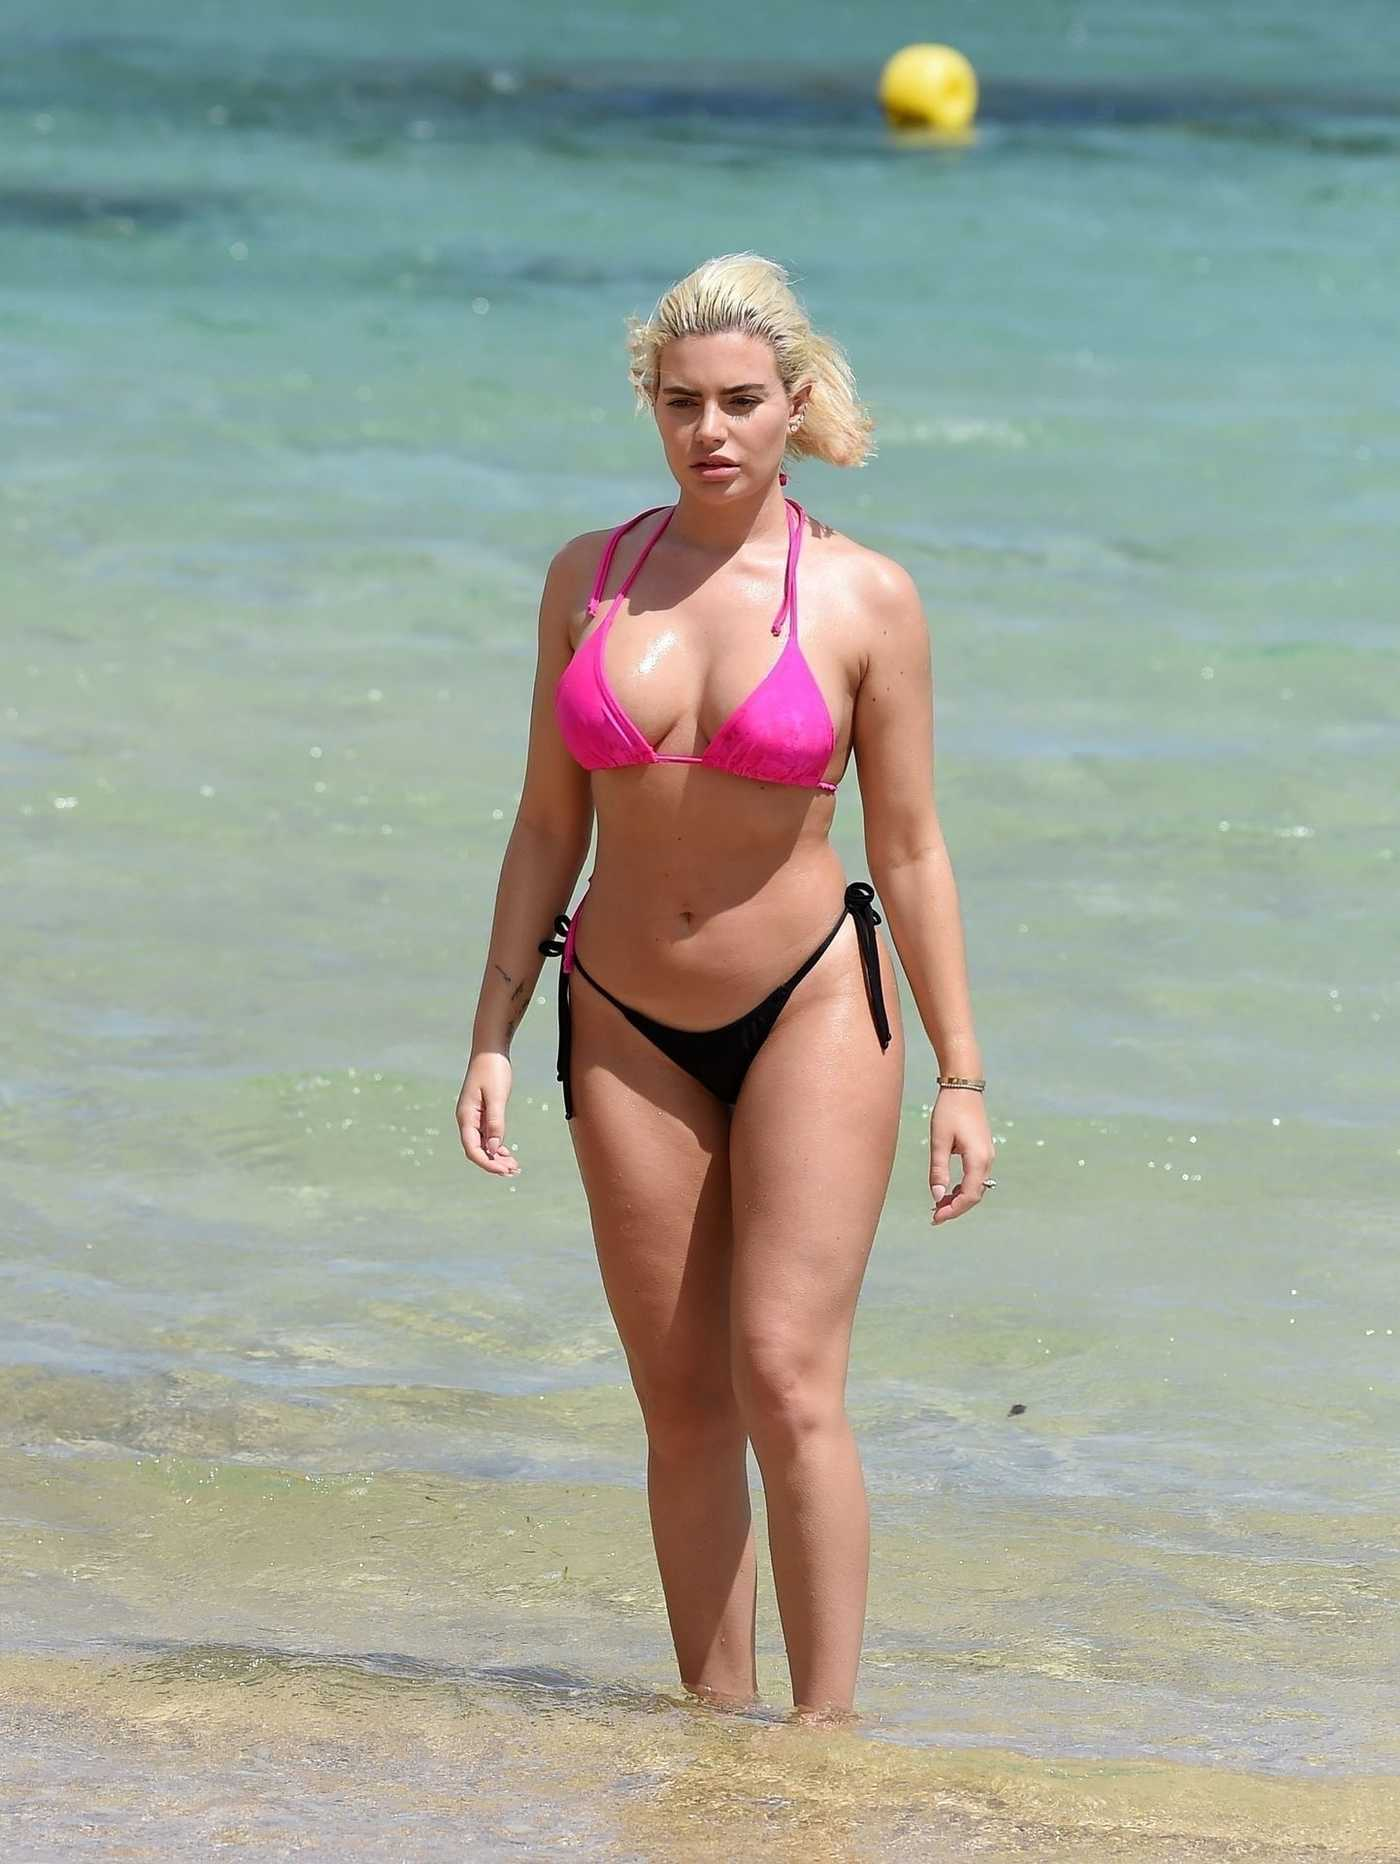 Megan Barton Hanson in a Skimpy Bikini on the Beach in Mauritius 12/17/2018